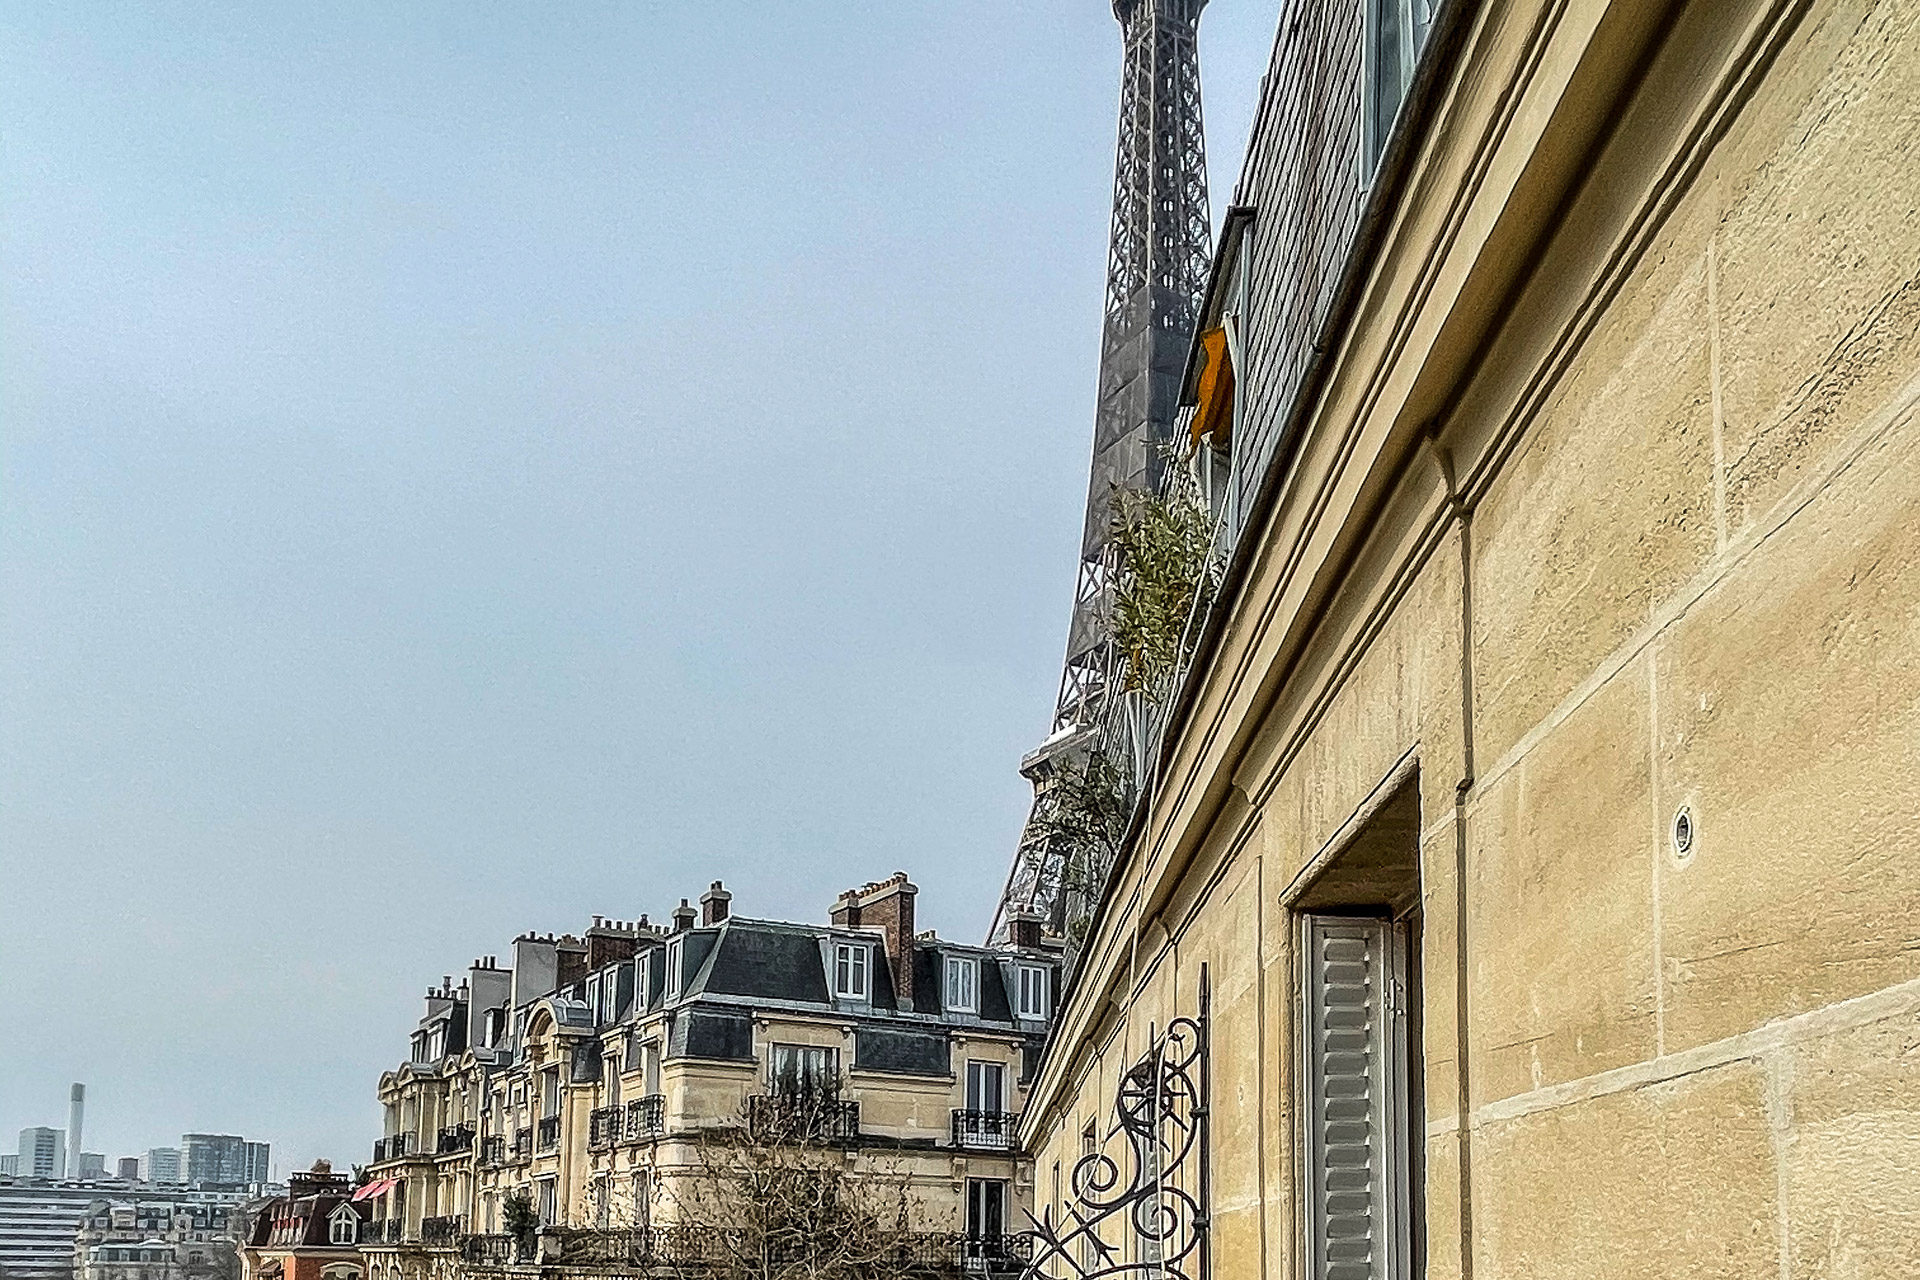 View of the Eiffel Tower from the balcony.